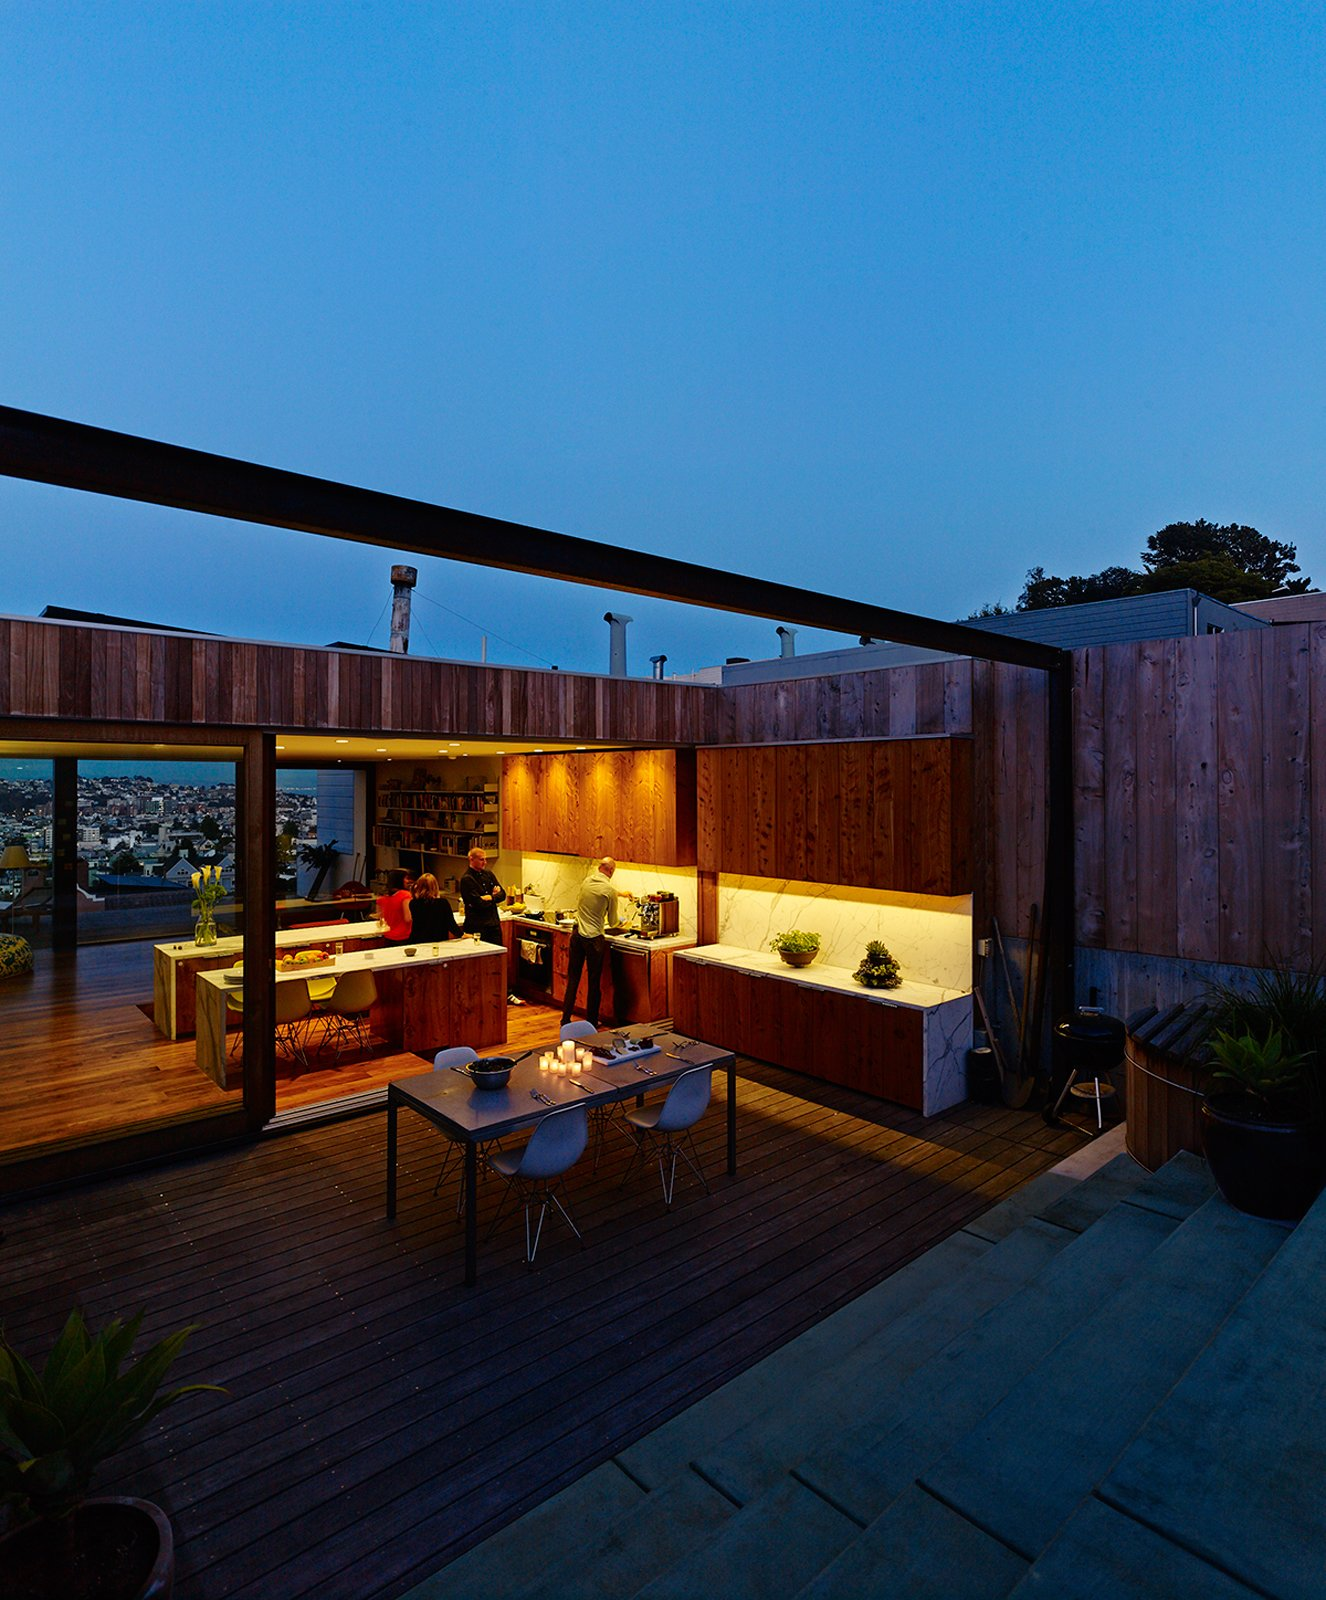 Exterior, Wood Siding Material, and House Building Type At night, opening the entire top floor is a breeze. Russell-Clarke and Moolsintong are even planning of rigging some kind of sail over the back patio for shade. The hot tub is by Roberts Hot Tubs.  Best Photos from Striking Slatted Wood and Glass Home in San Francisco